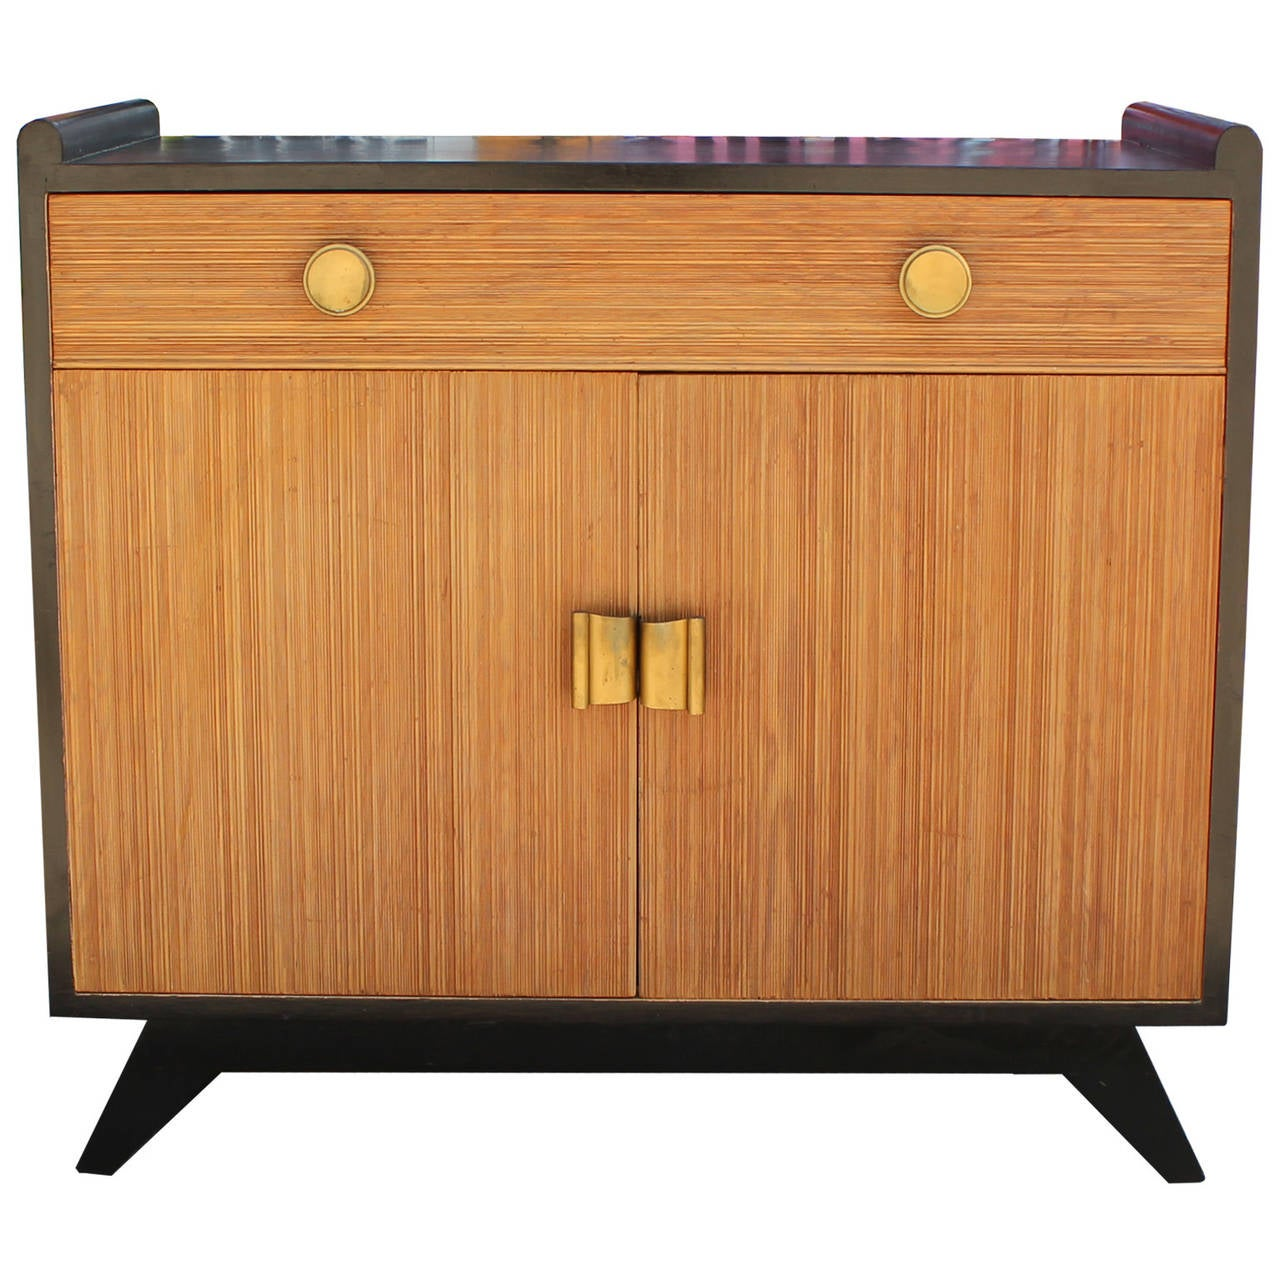 Paul frankl two tone combed wood cabinet for brown saltman for Two tone wood cabinets